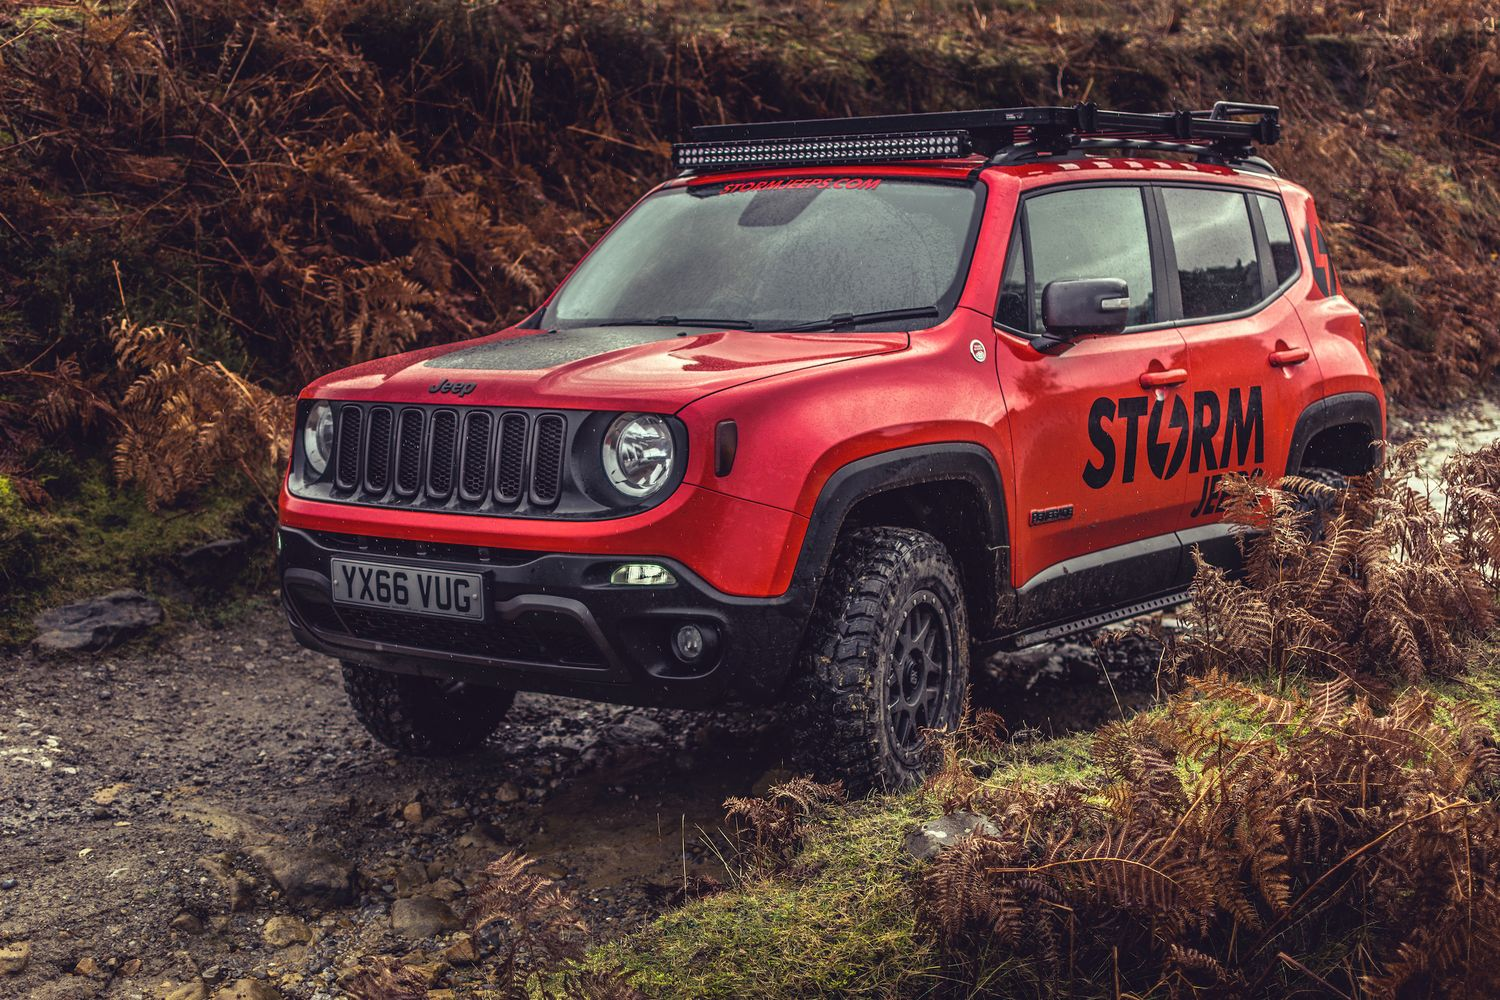 Storm 14 2016 Jeep Renegade Trailhawk also This 700hp Jeep Wrangler Pickup Is What Dreams Are Made Of together with Stock Photo April 1 2016 Custom Jeep Wrangler With Custom Doors And Leather Interior 101602952 besides 6326708954 in addition 339881103108497373. on lifted 4x4 jeeps